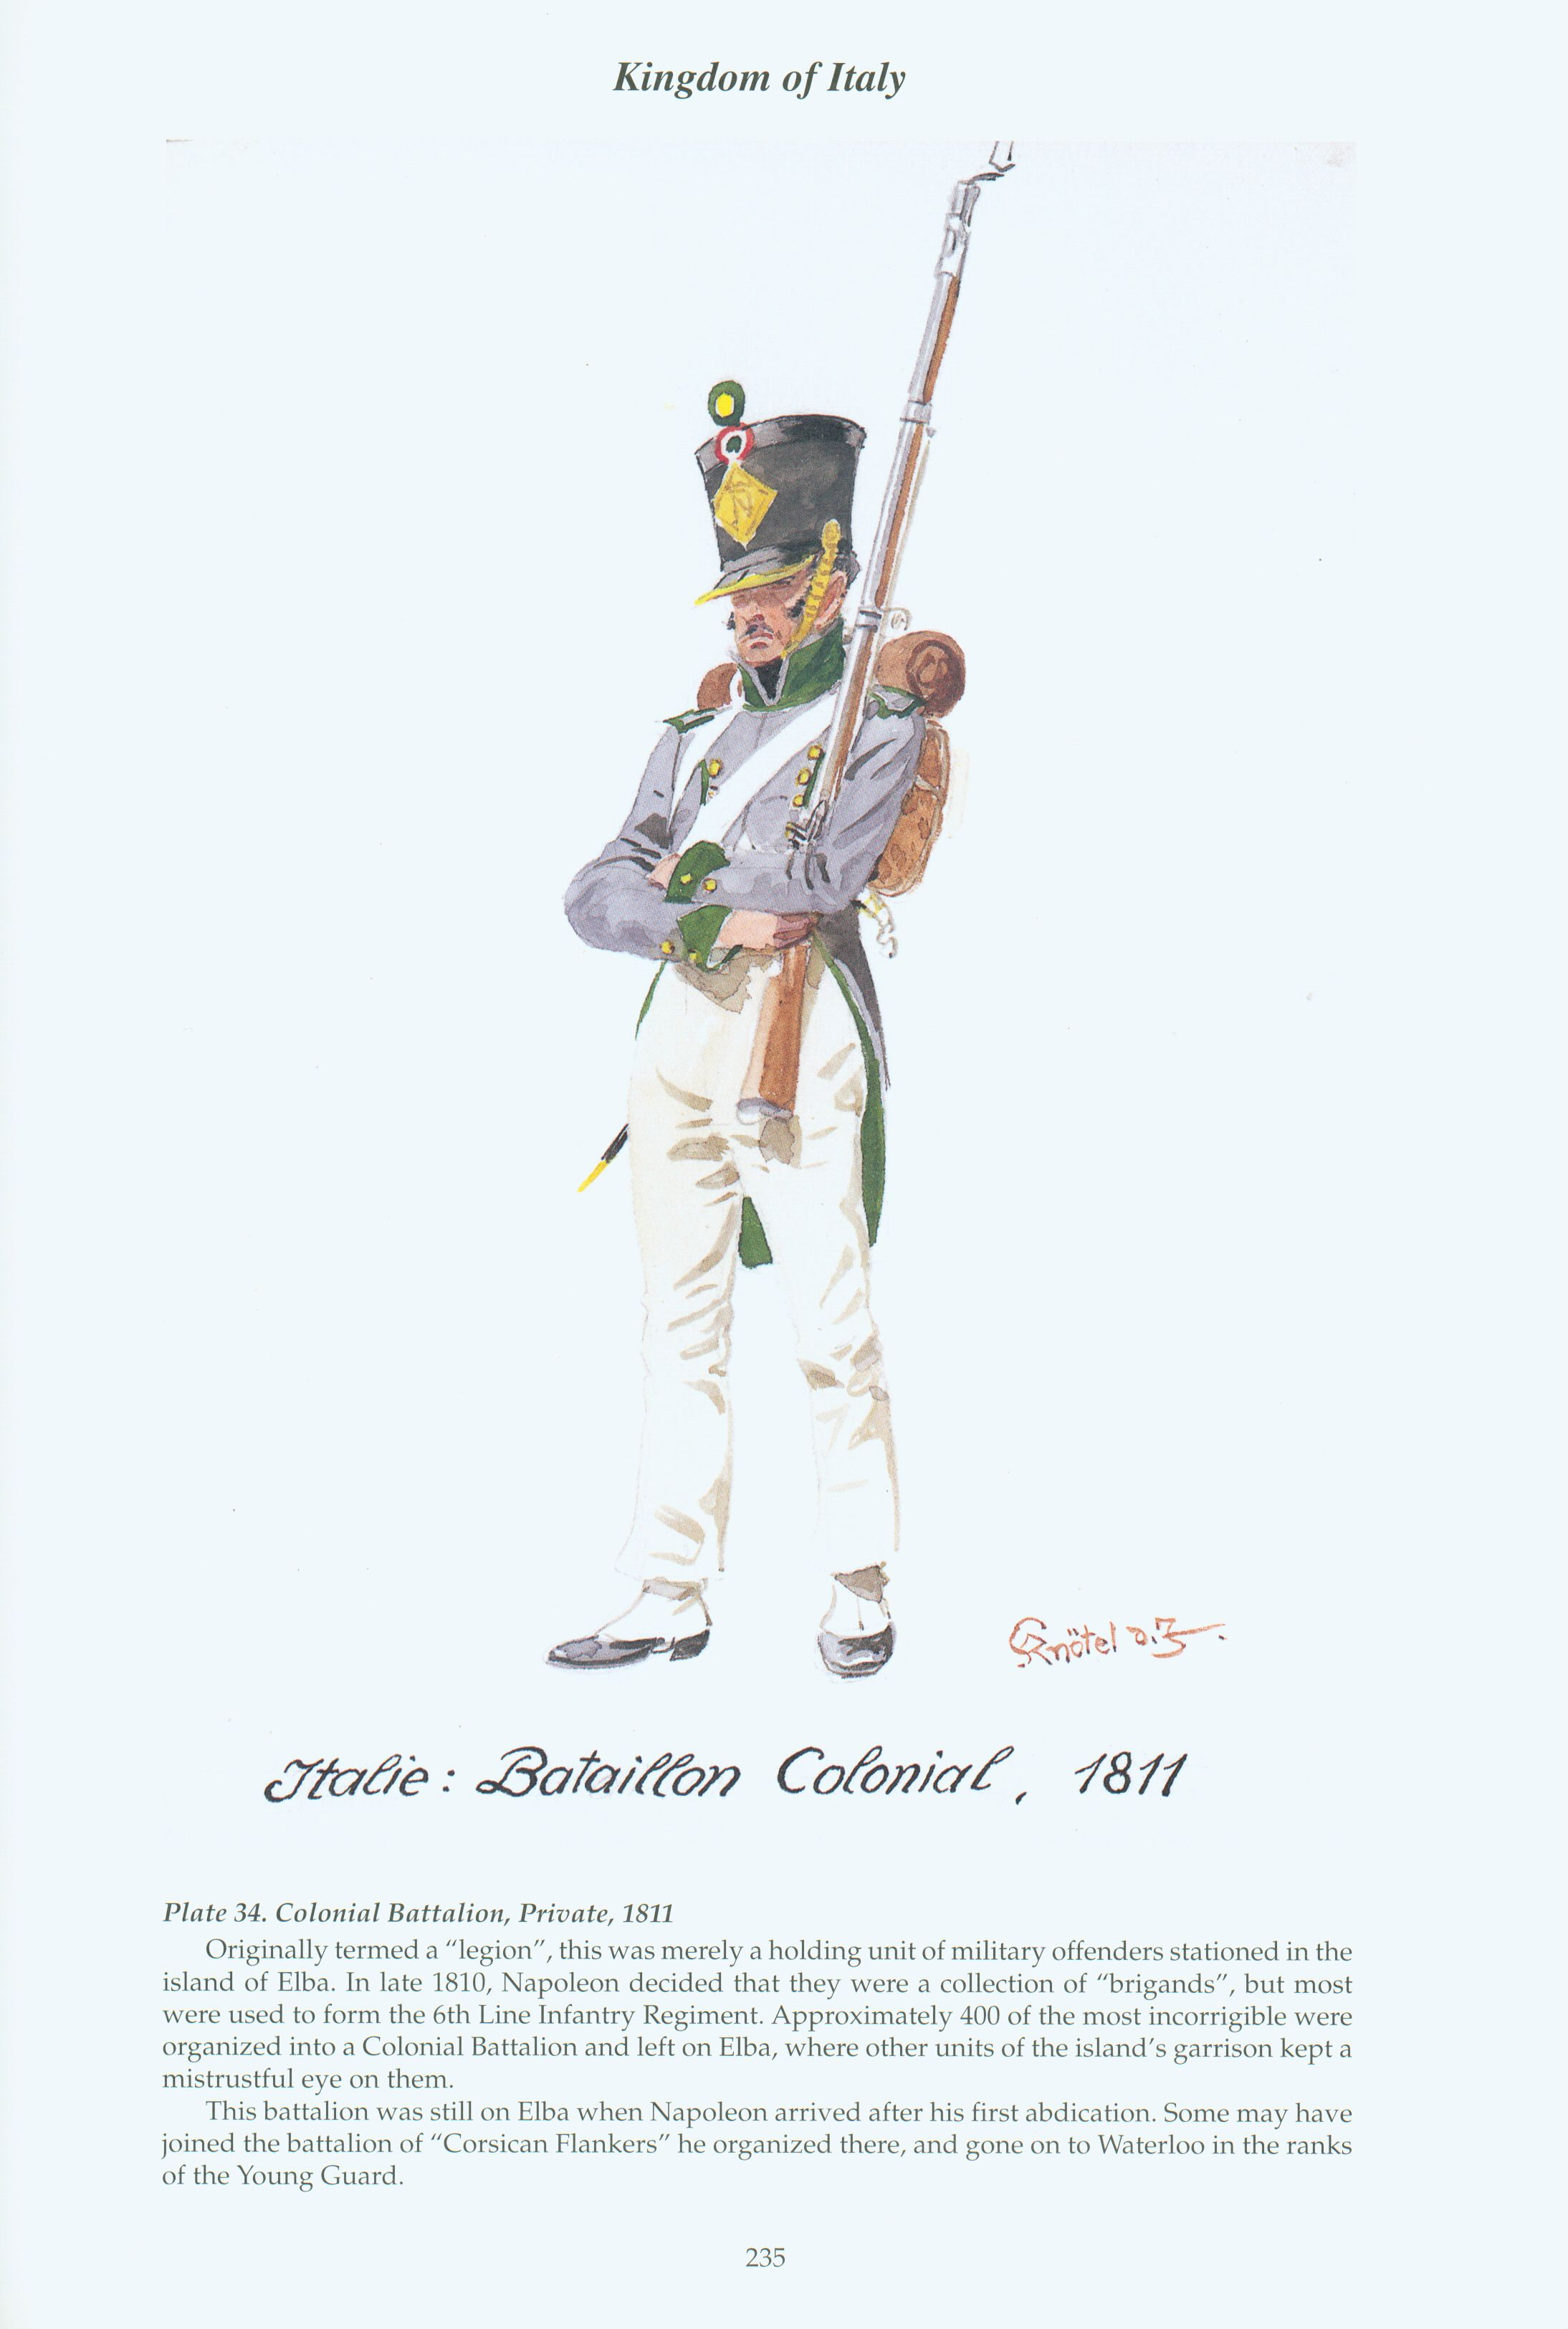 Kingdom of Italy: Plate 34: Colonial Battalion, Private, 1811